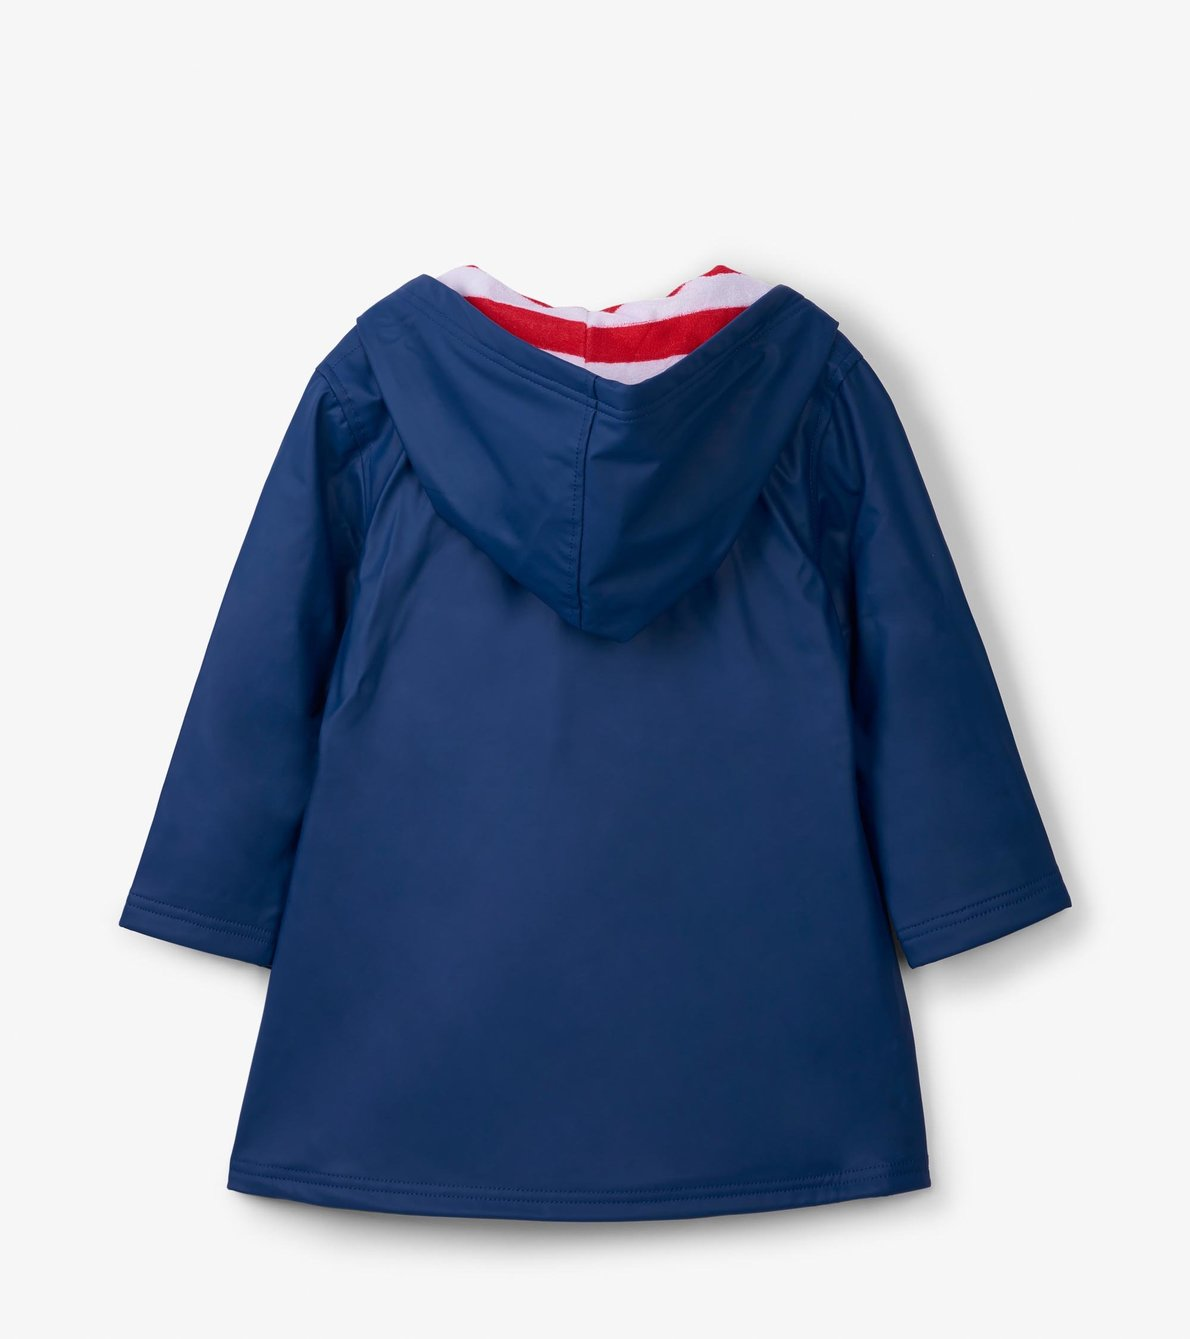 View larger image of Navy with Red Stripe Lining Splash Jacket